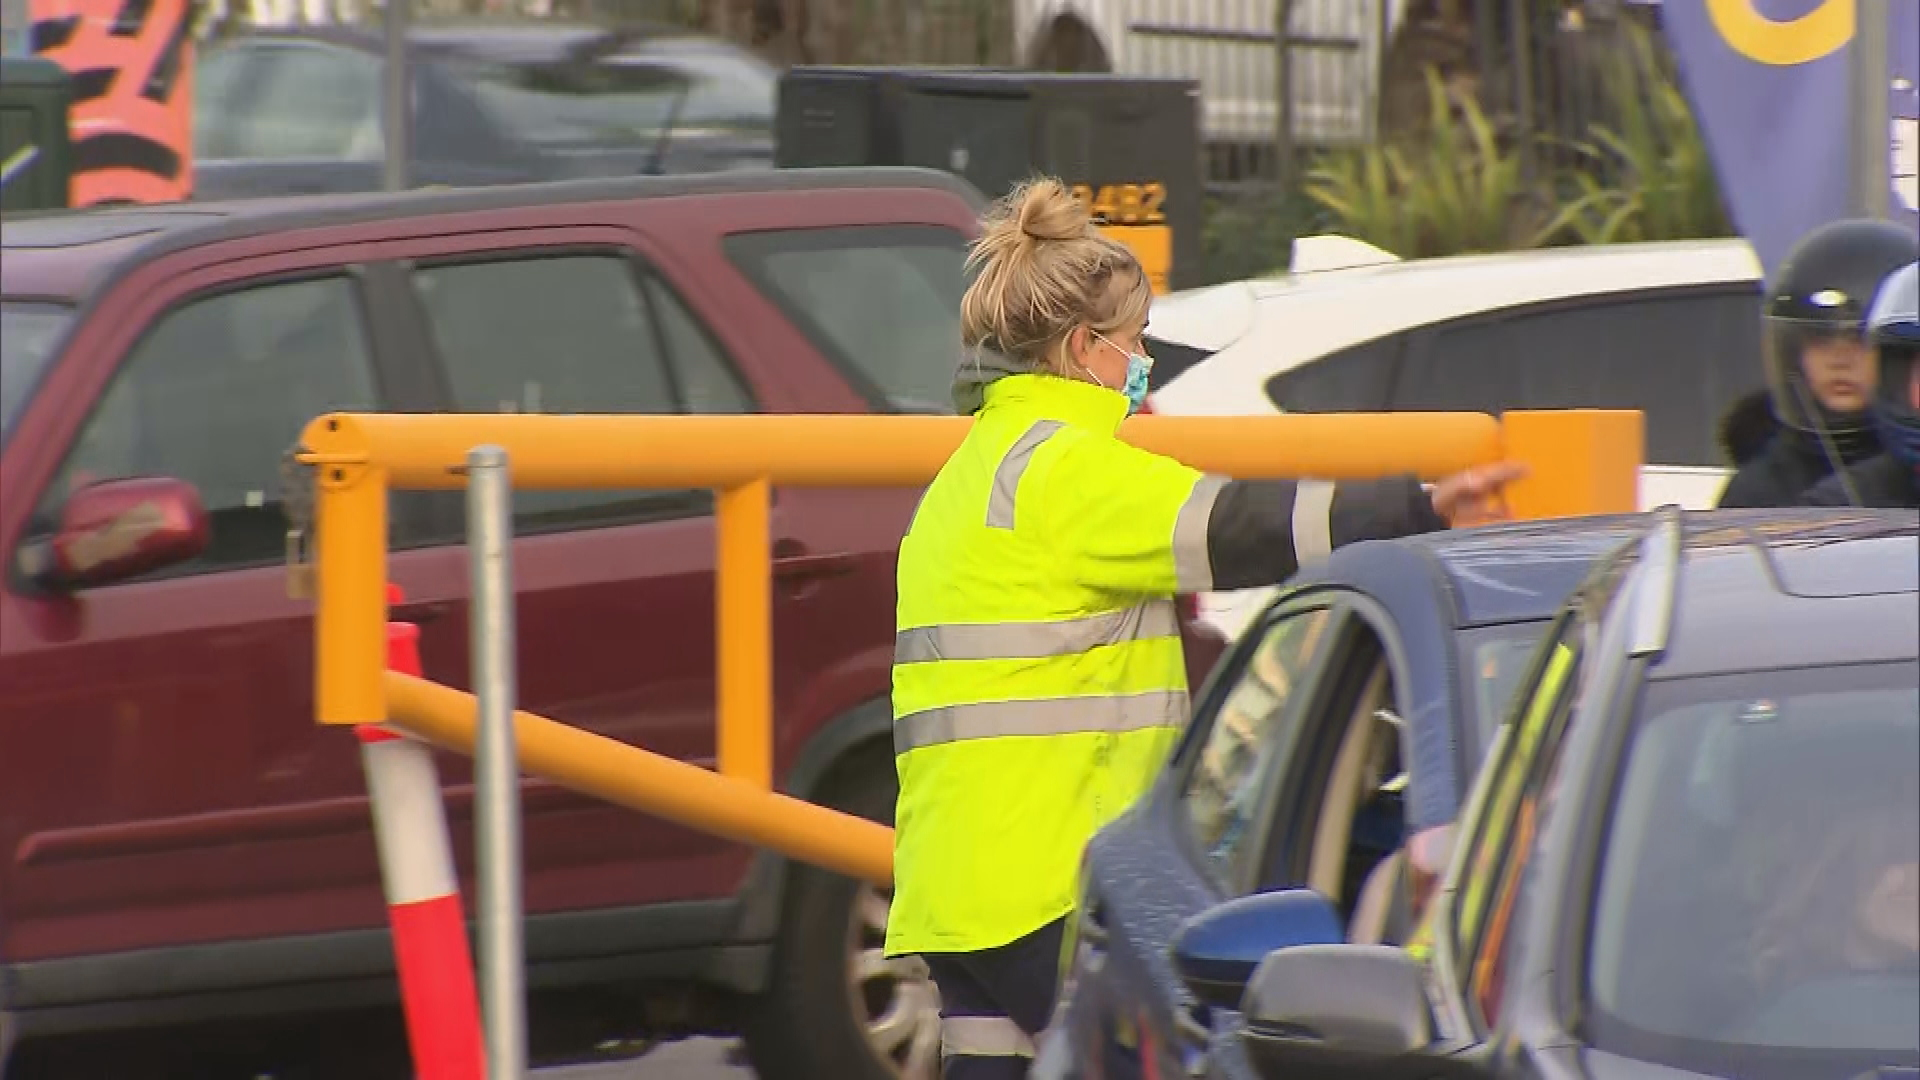 Lines are growing at a Bondi testing clinic, as authorities work to identify the source of a mystery COVID-19 case.